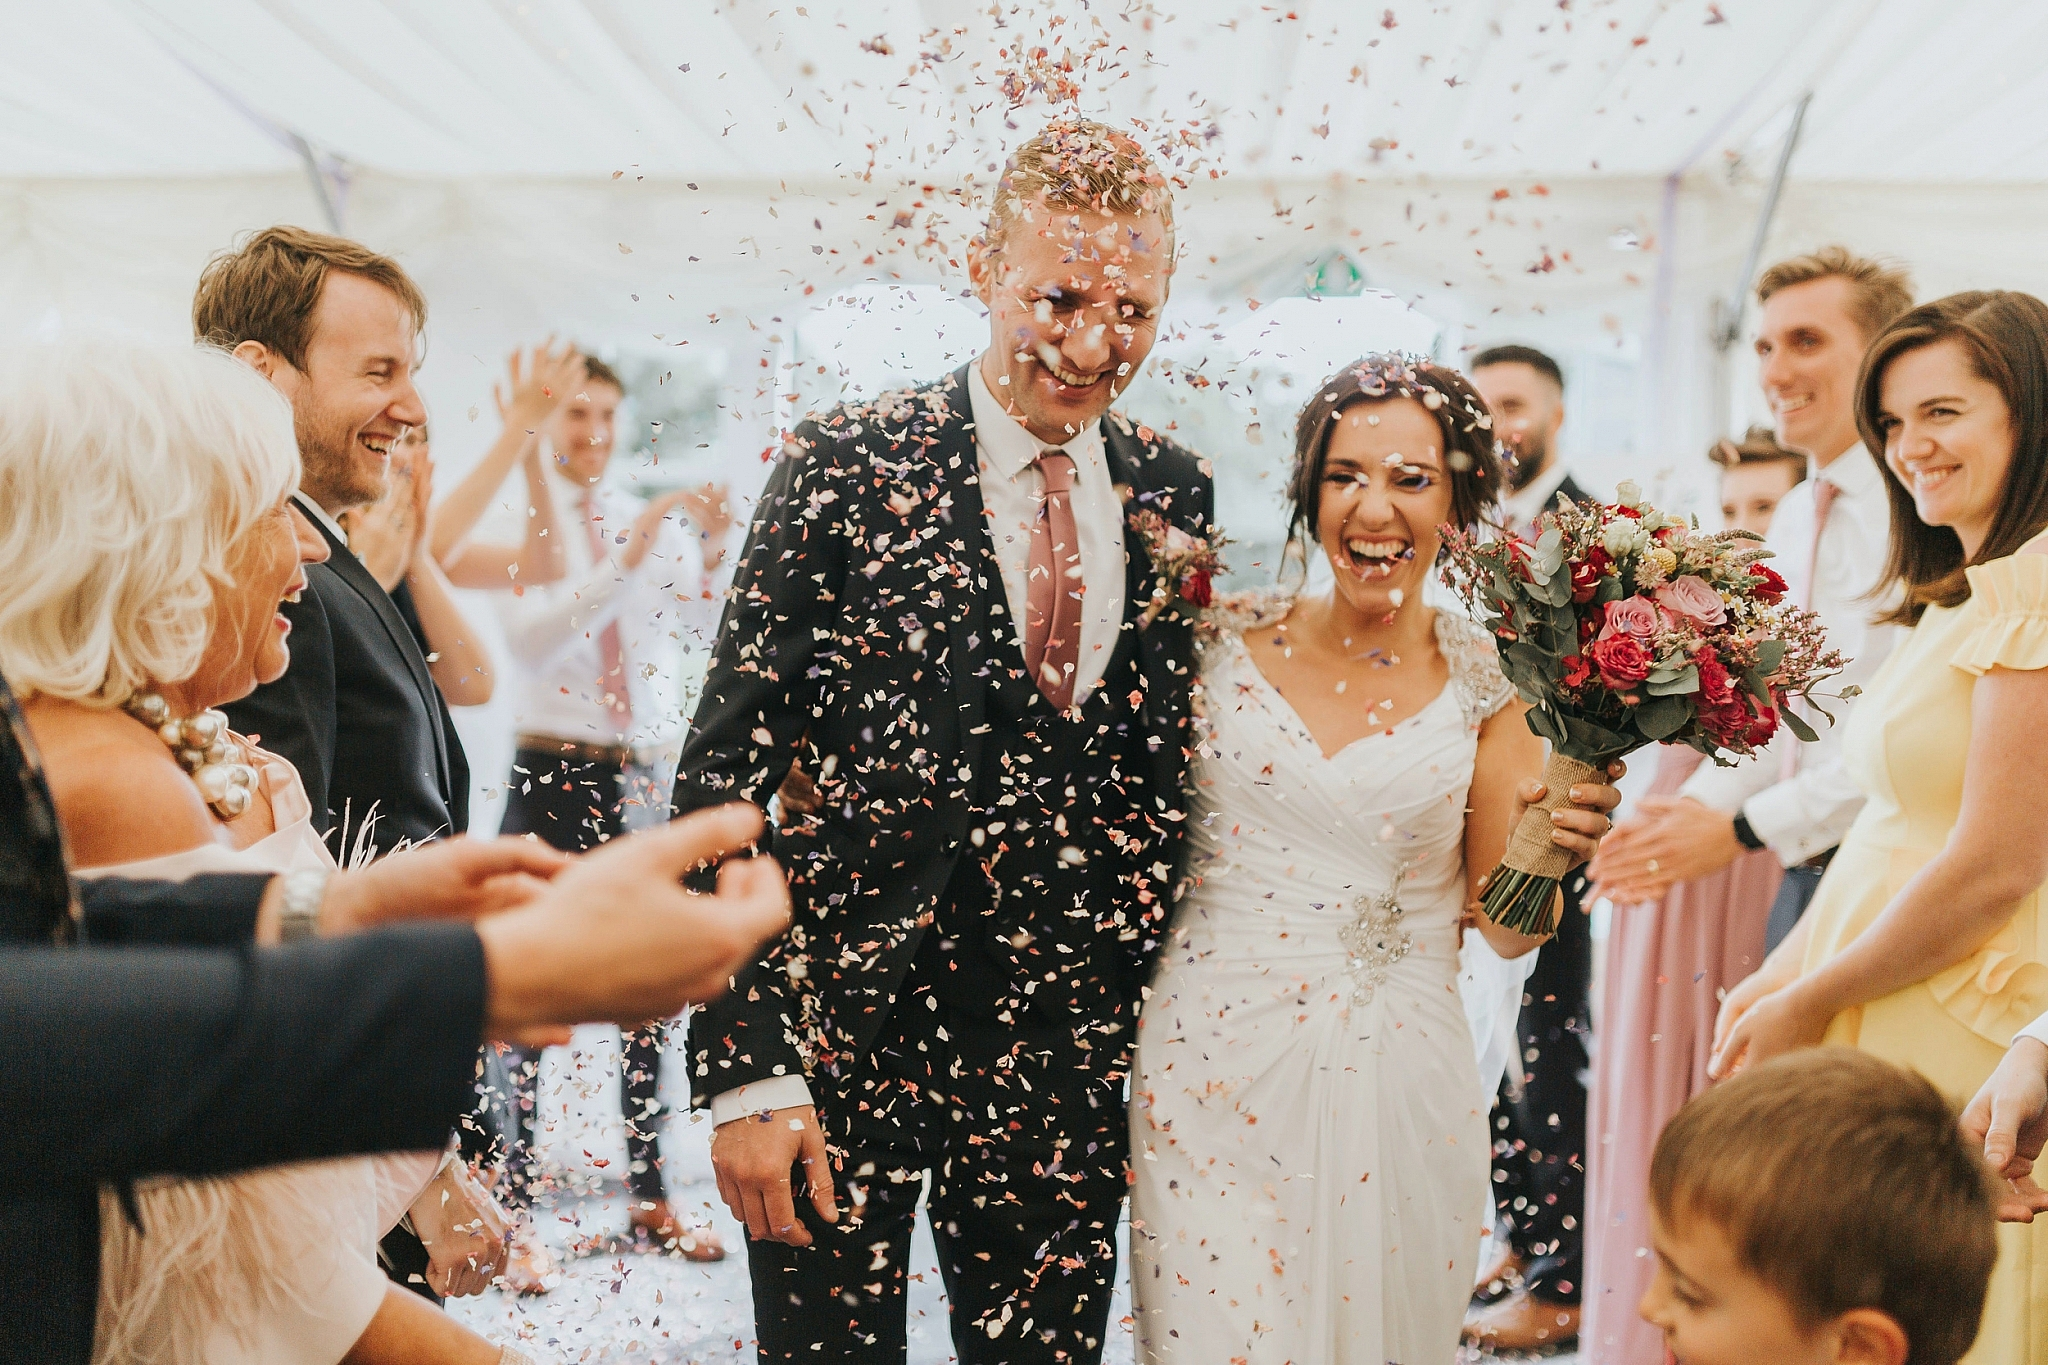 confetti Hilltop Country House Wedding Photography Claire Keir by Emily Crutcher 68